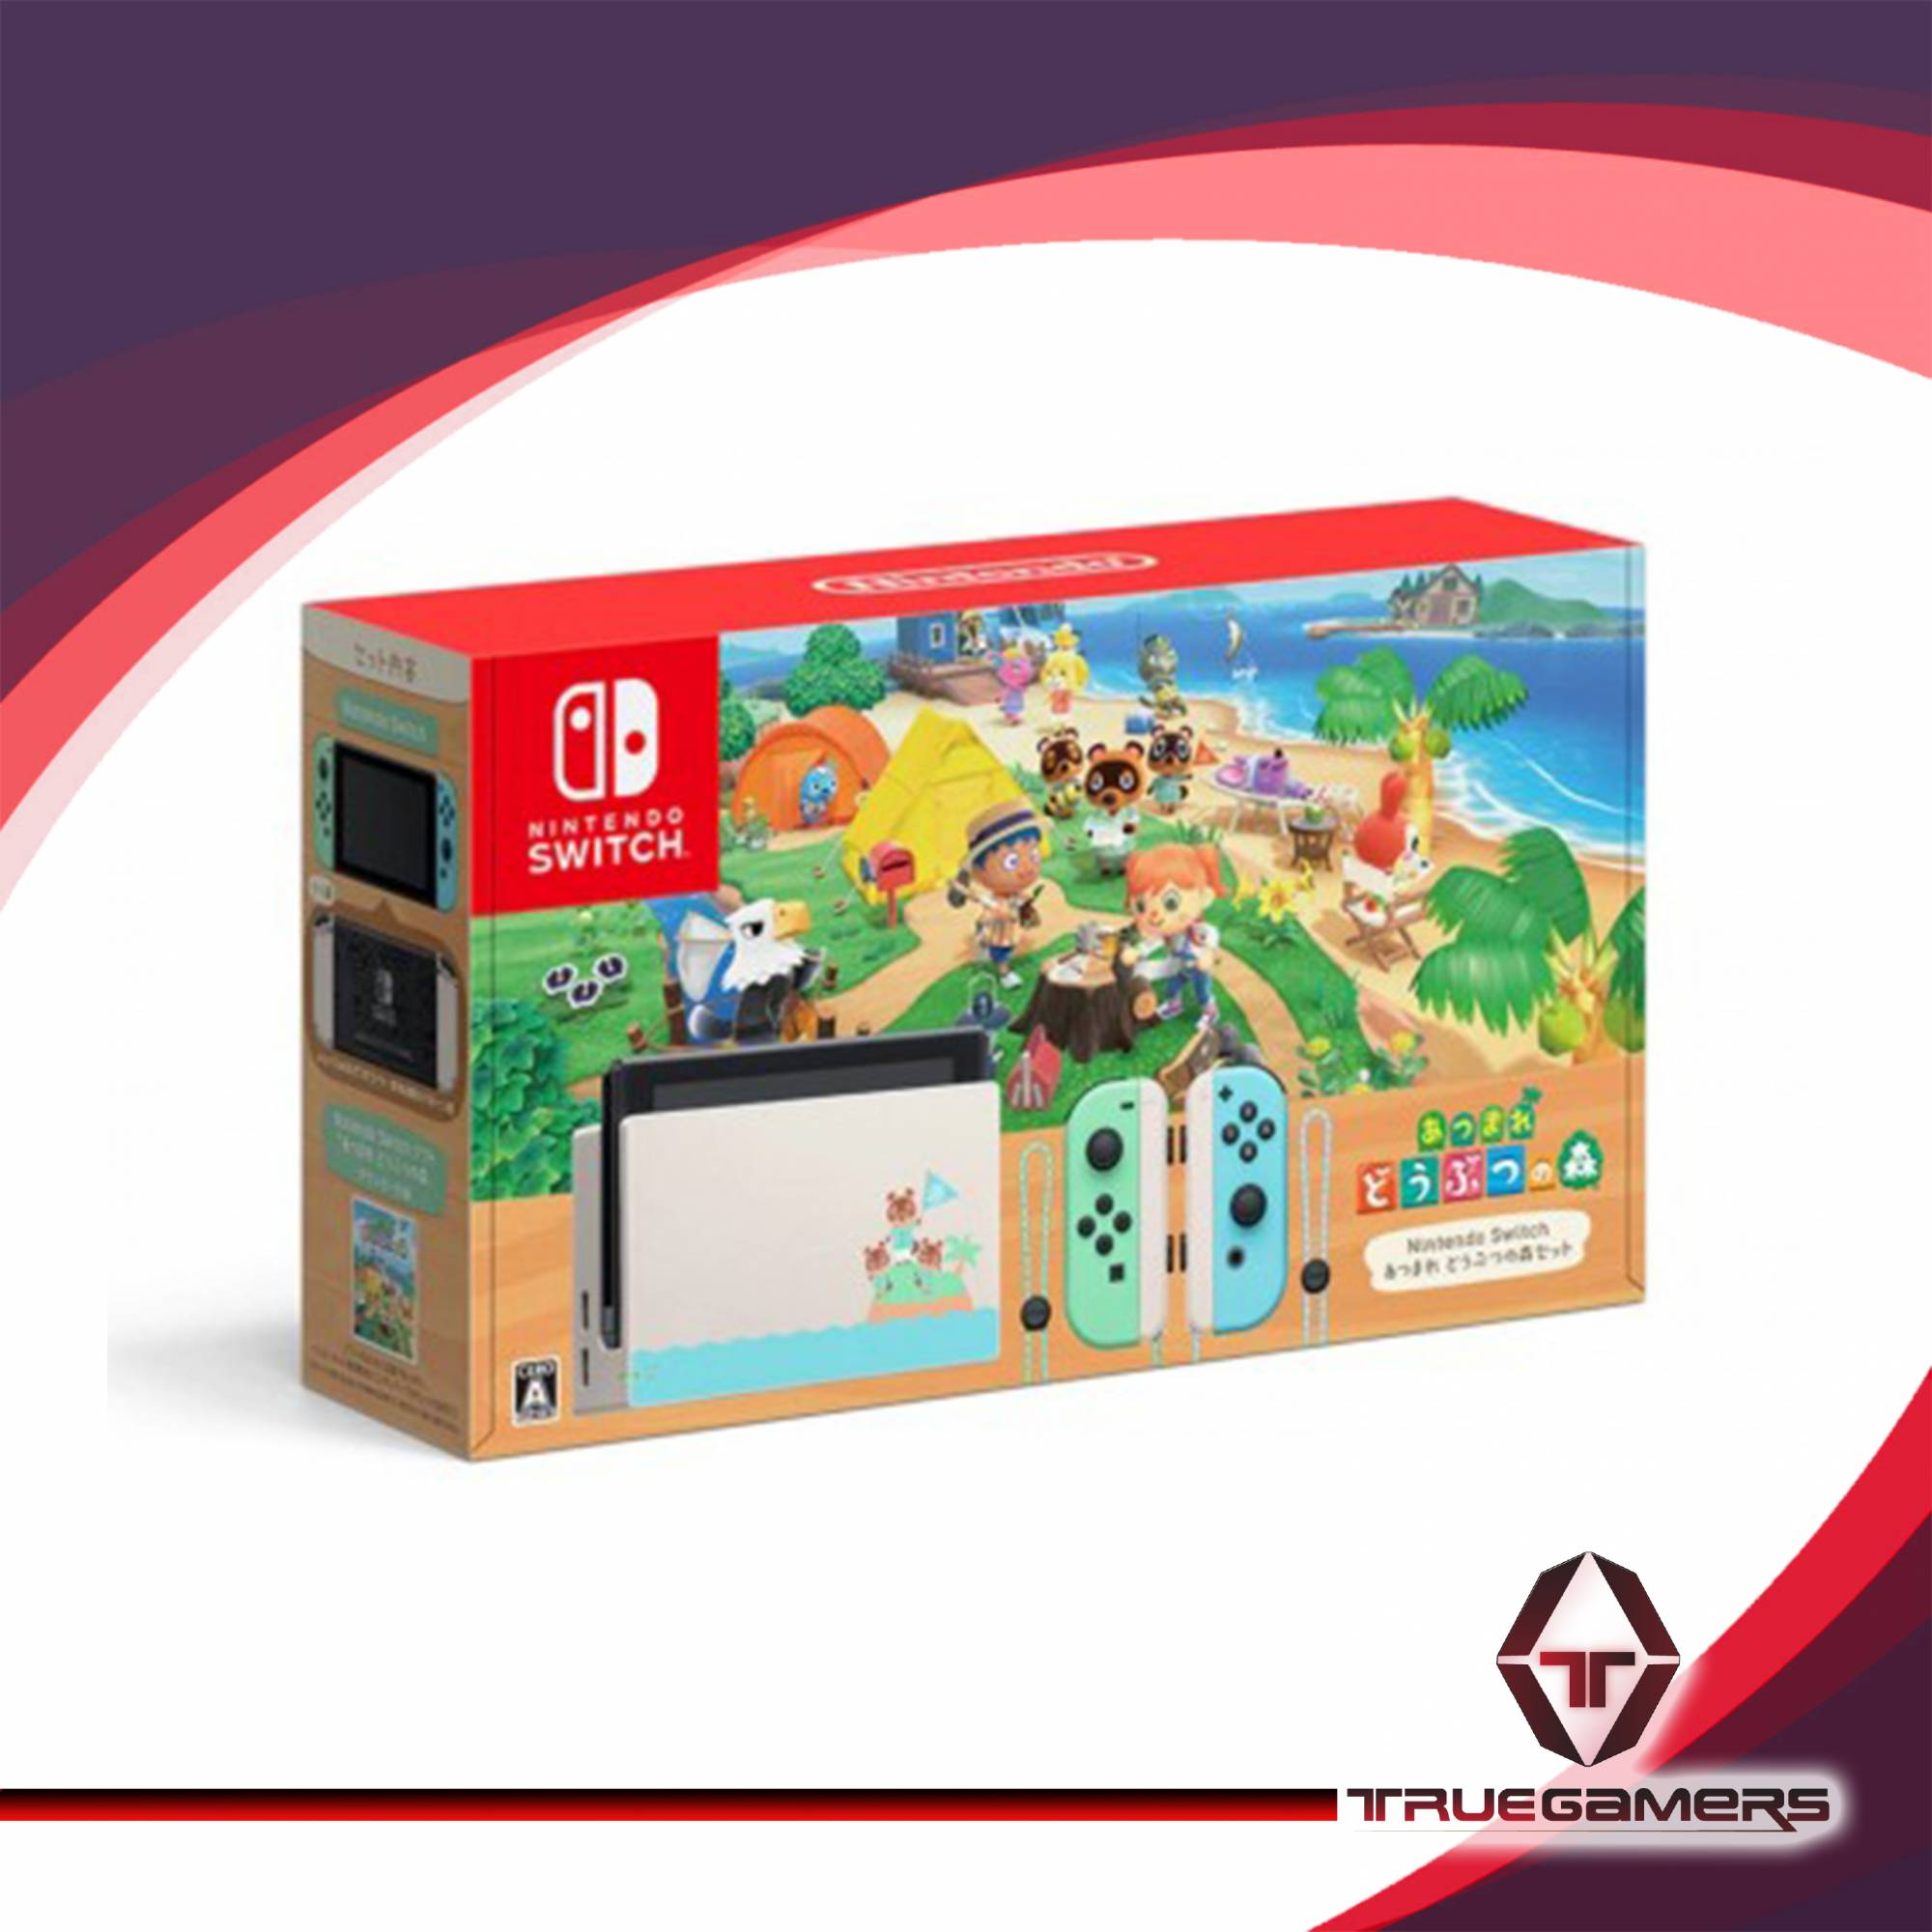 NINTENDO SWITCH CONSOLE ANIMAL CROSSING LIMITED EDITION ...